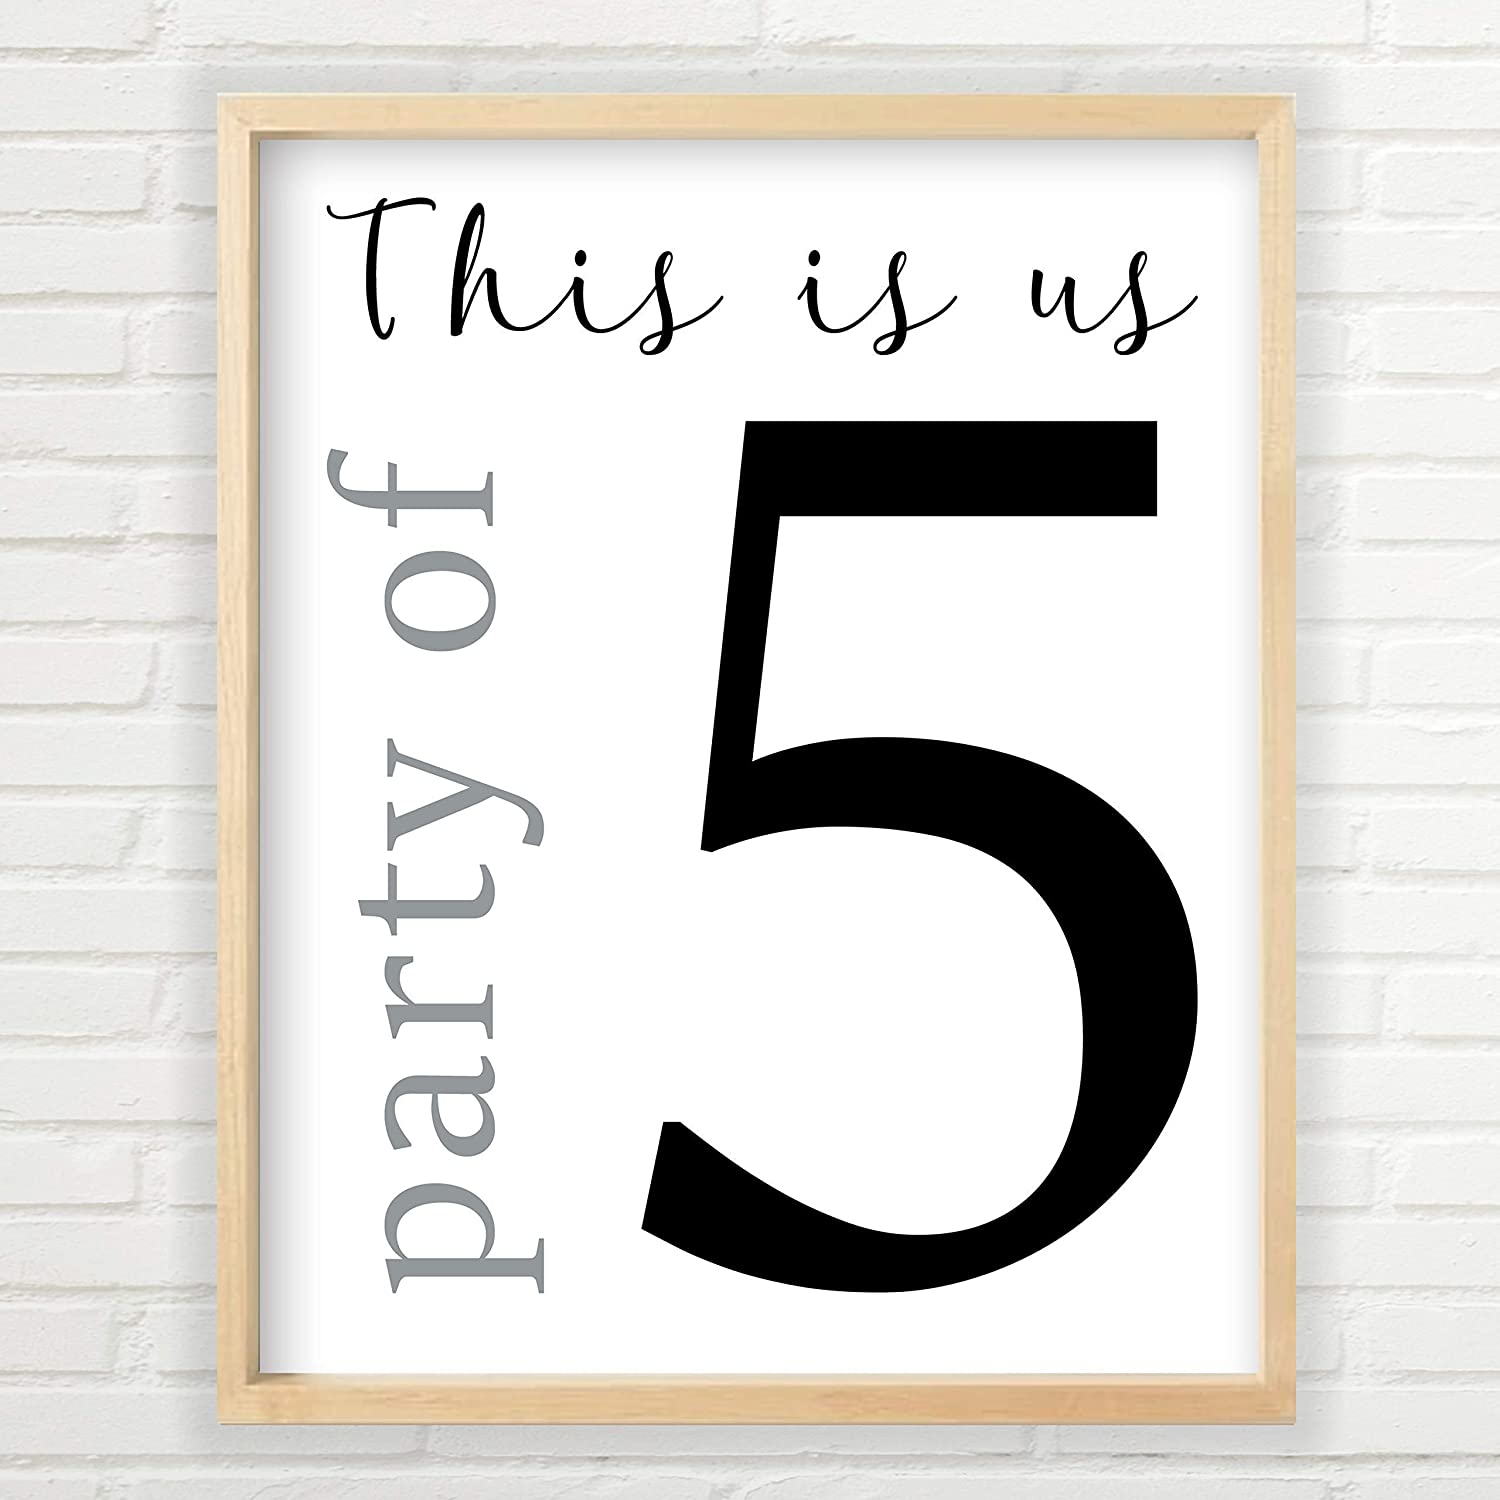 Max 71% OFF Party of 5 Wall Decor 11x14 Print inch Farmhouse Unframed Part Max 82% OFF